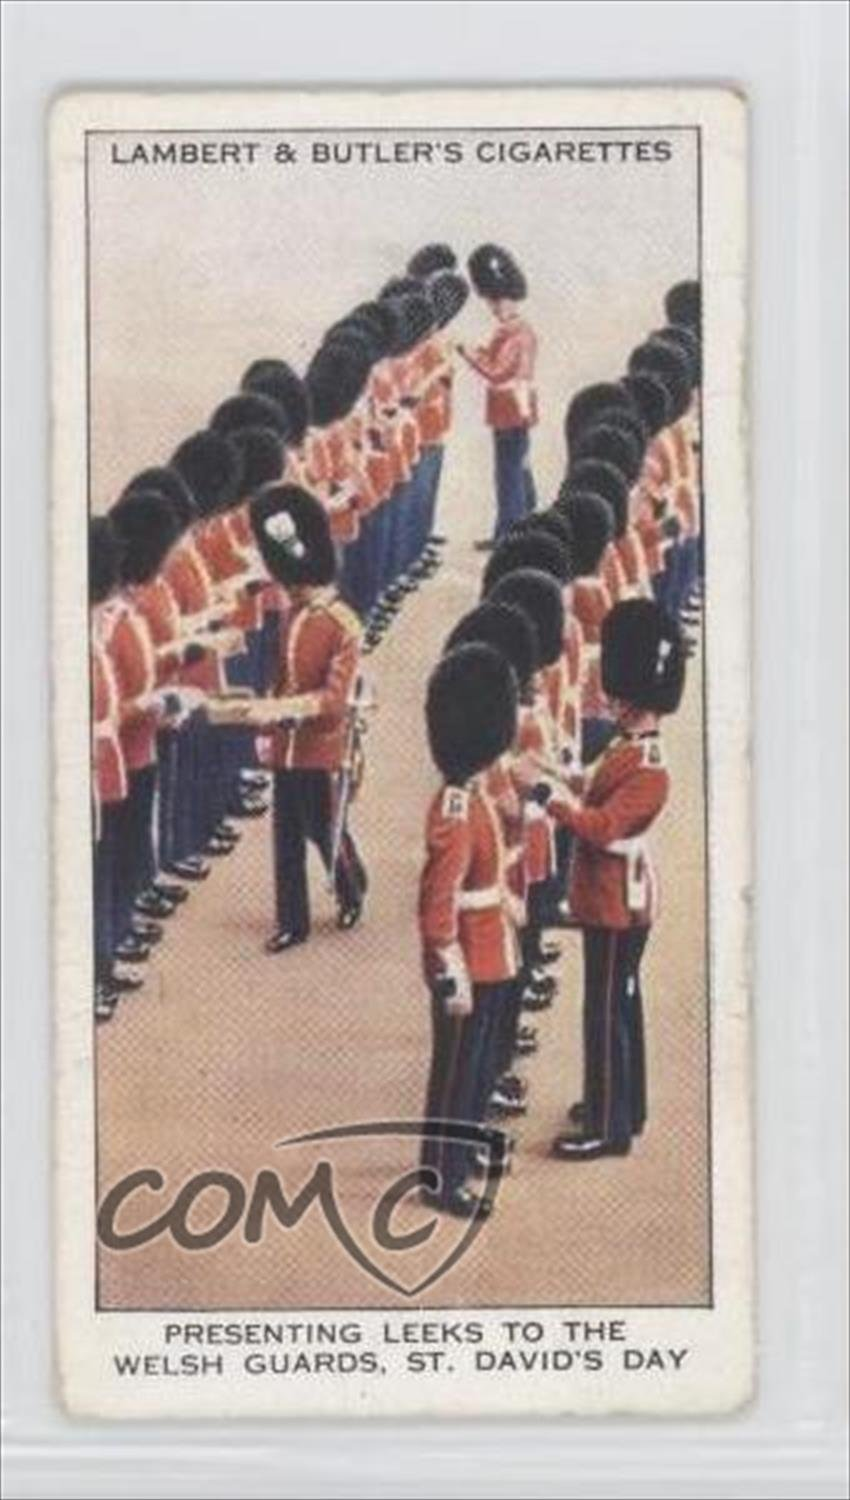 Trading Card: Presenting Leeks to Welsh Guards on St. David's Day